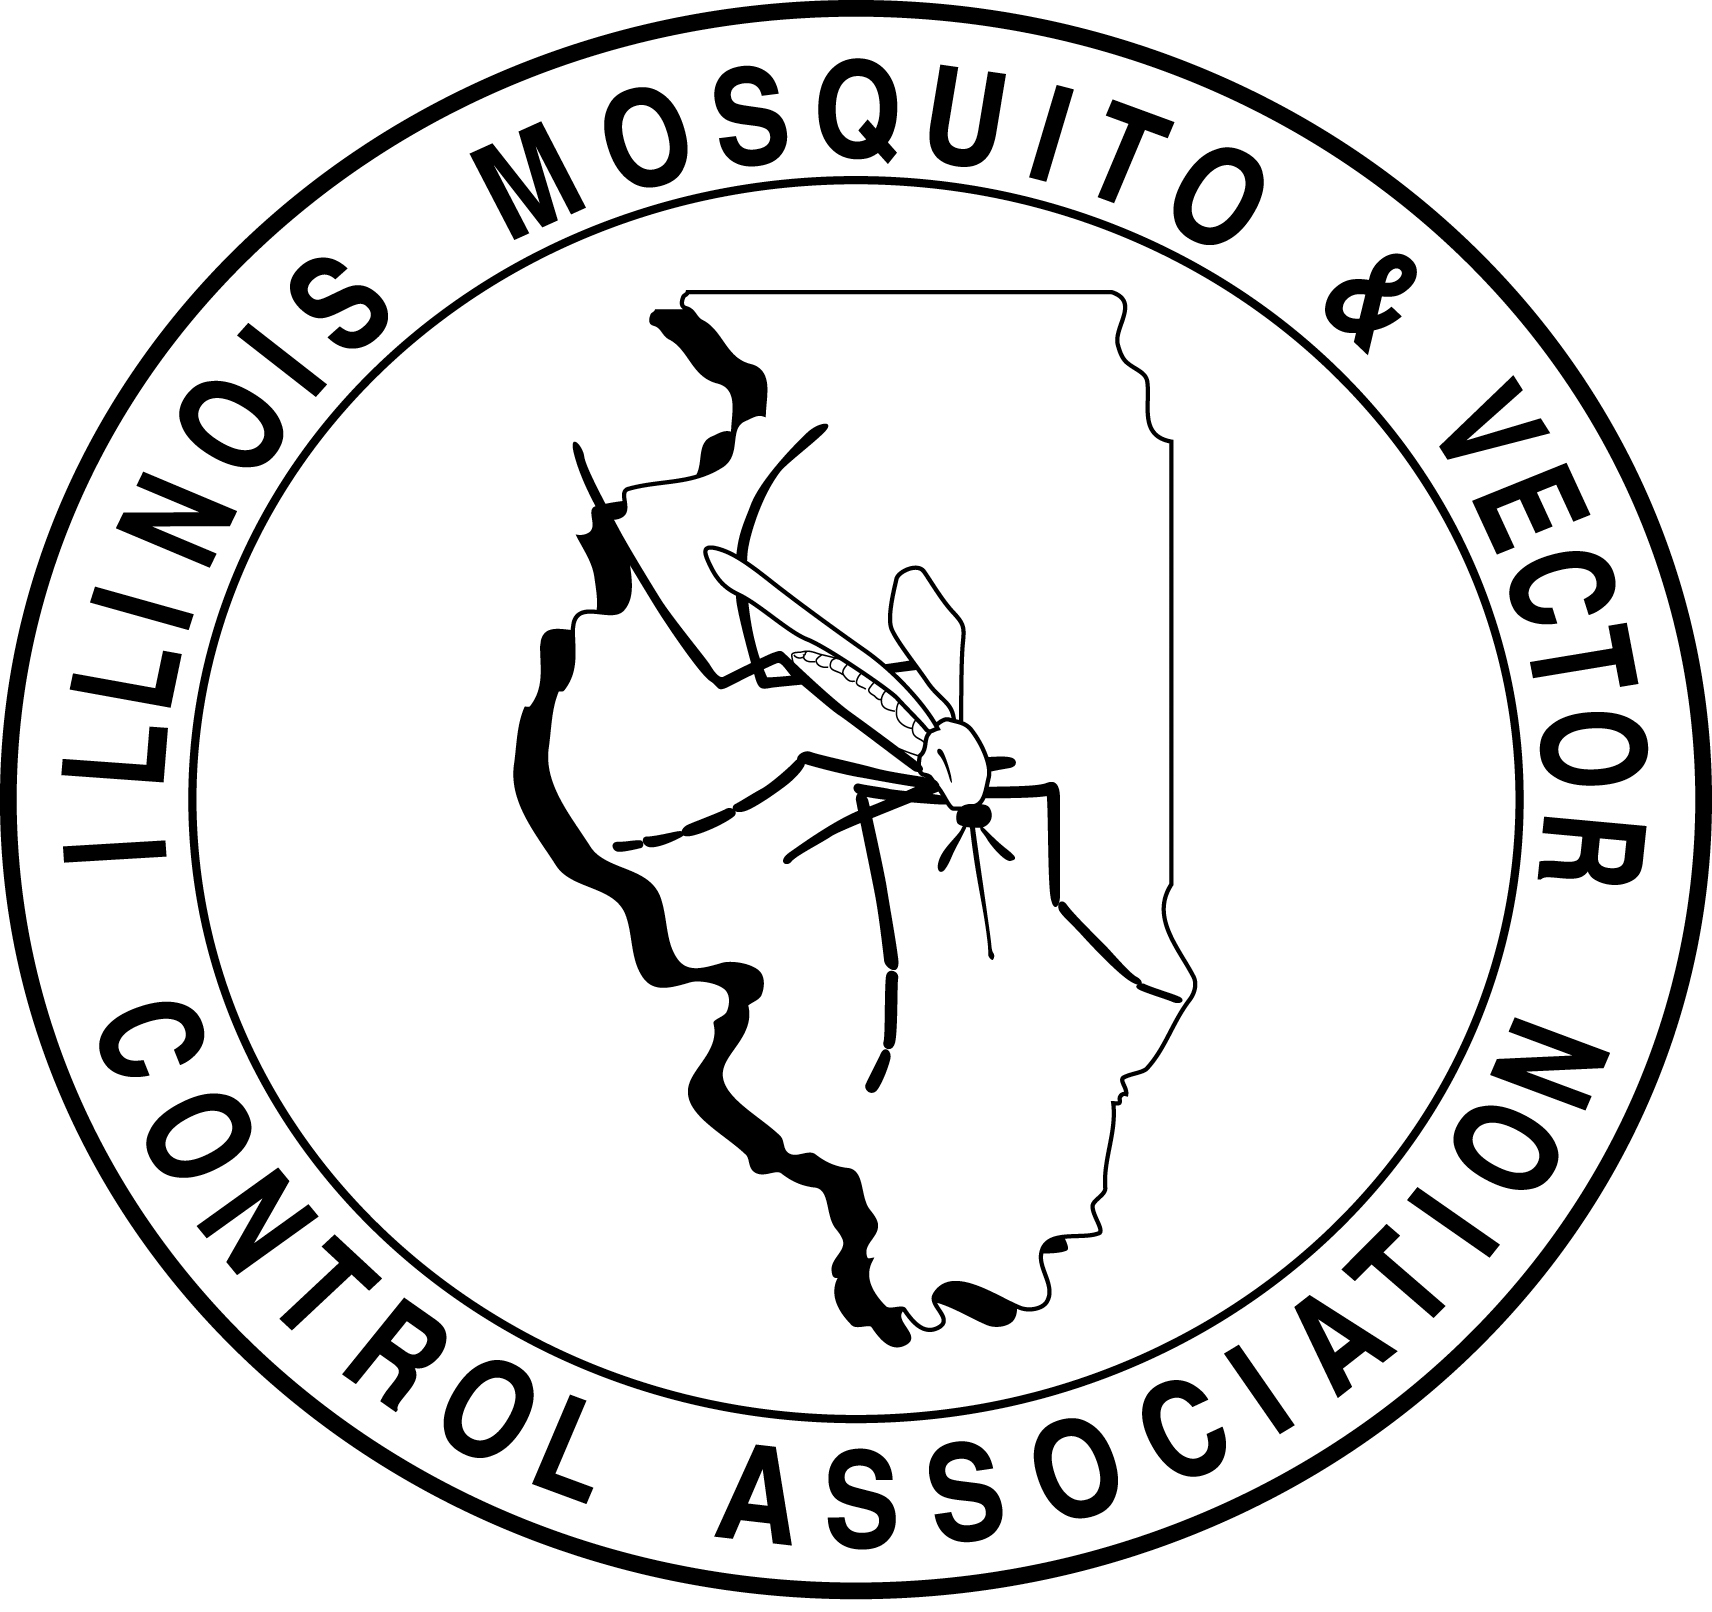 1712x1612 Illinois Mosquito Amp Vector Control Association Dedicated To The